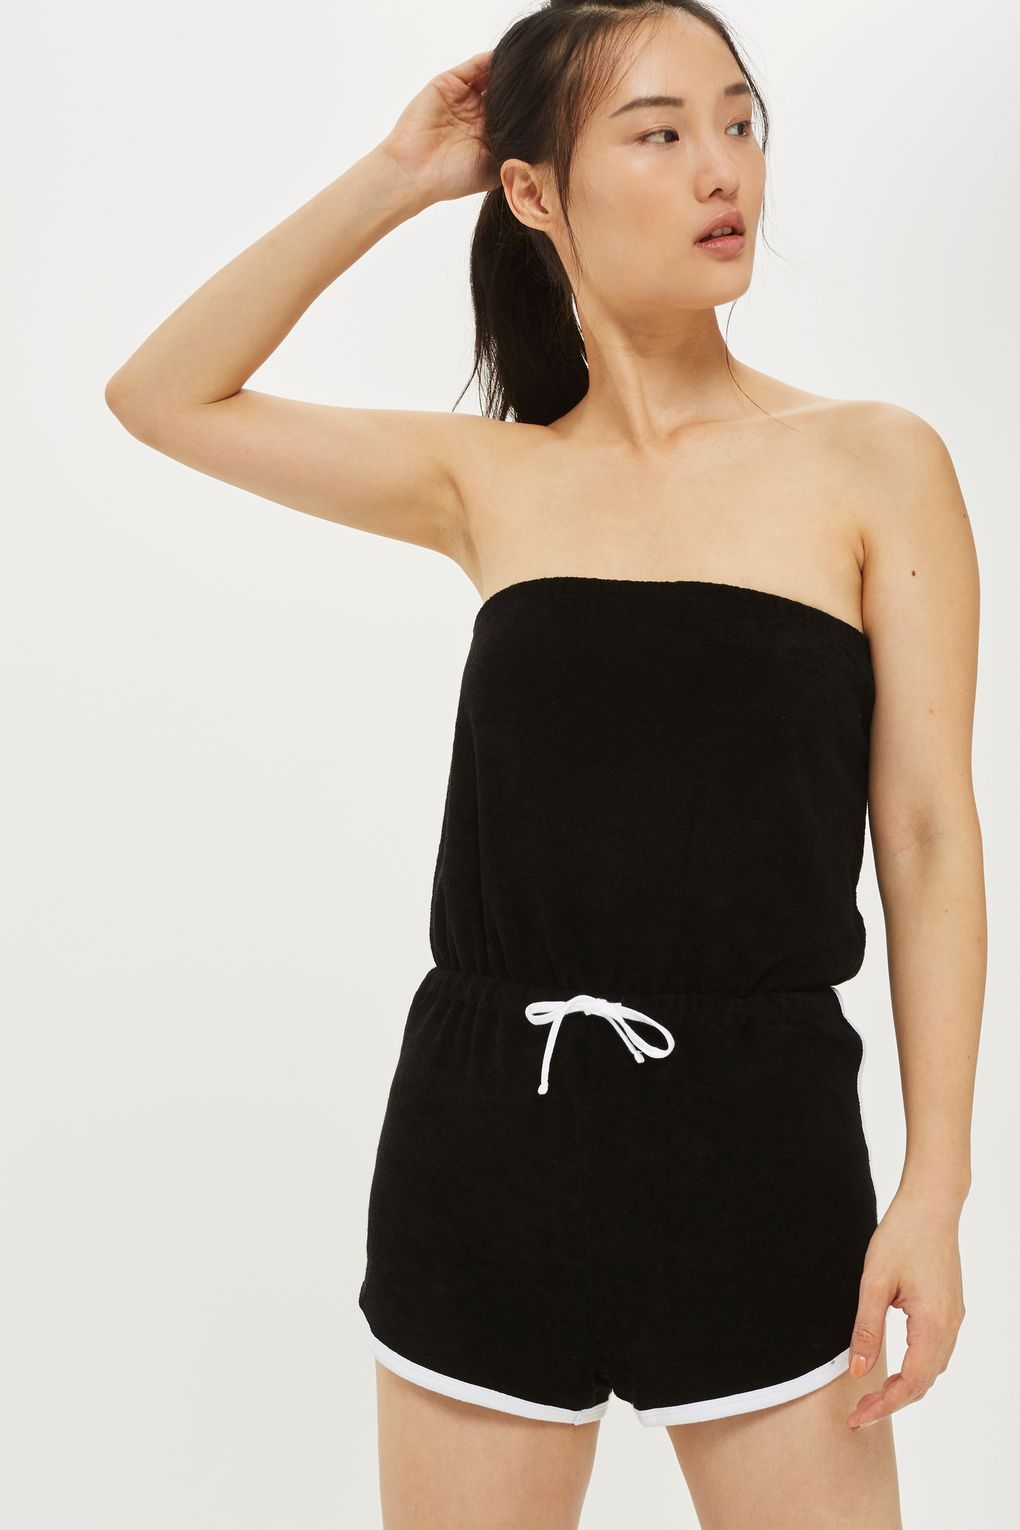 ae24bb2f670 TOPSHOP Towelling Bandeau Playsuit Opt for a comfy feel with this black  bandeau playsuit. Textured in a super-soft towelling material